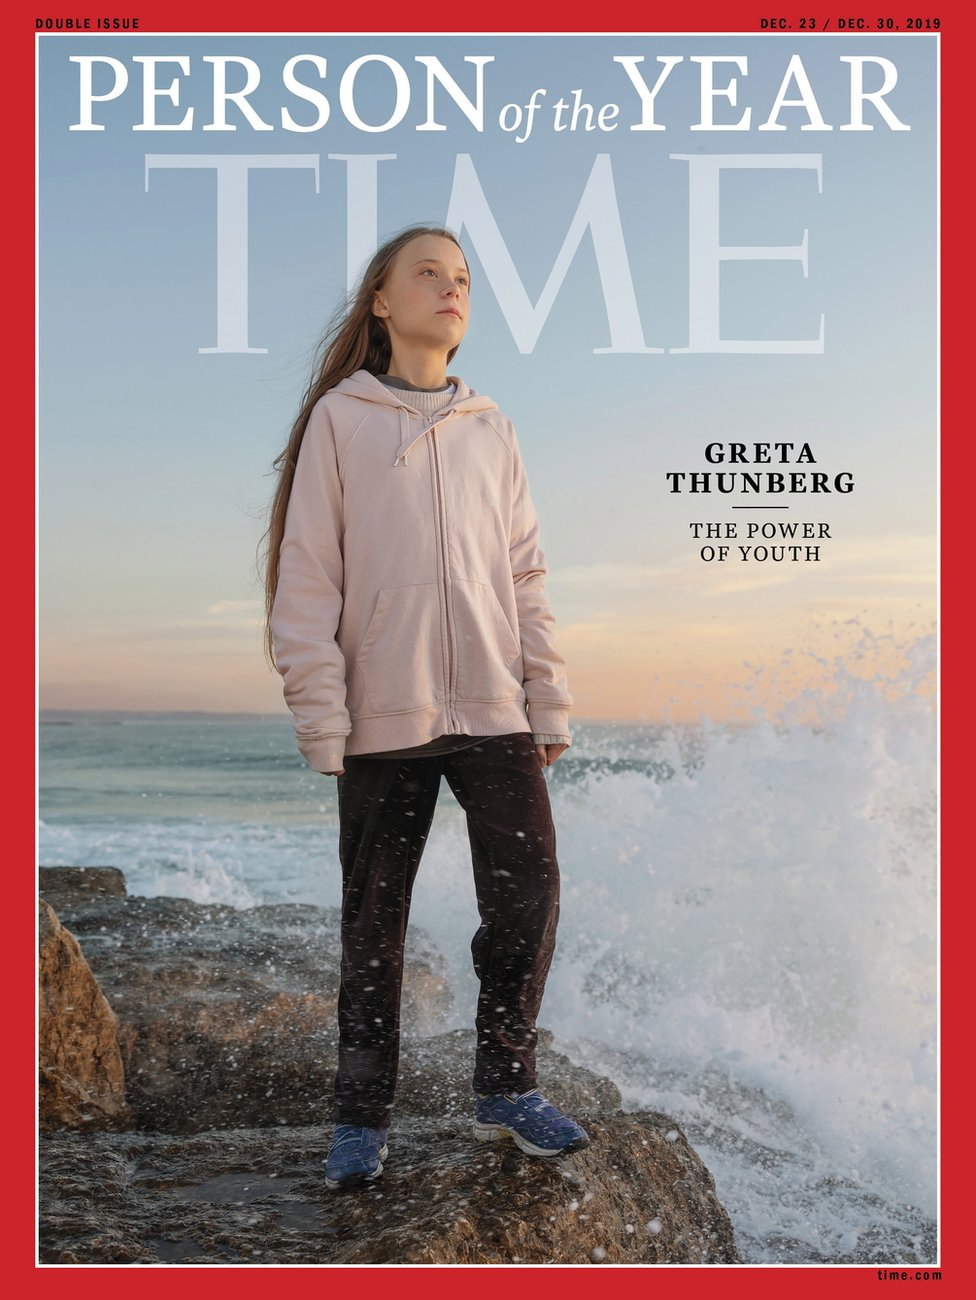 Time magazine cover with Greta Thunberg